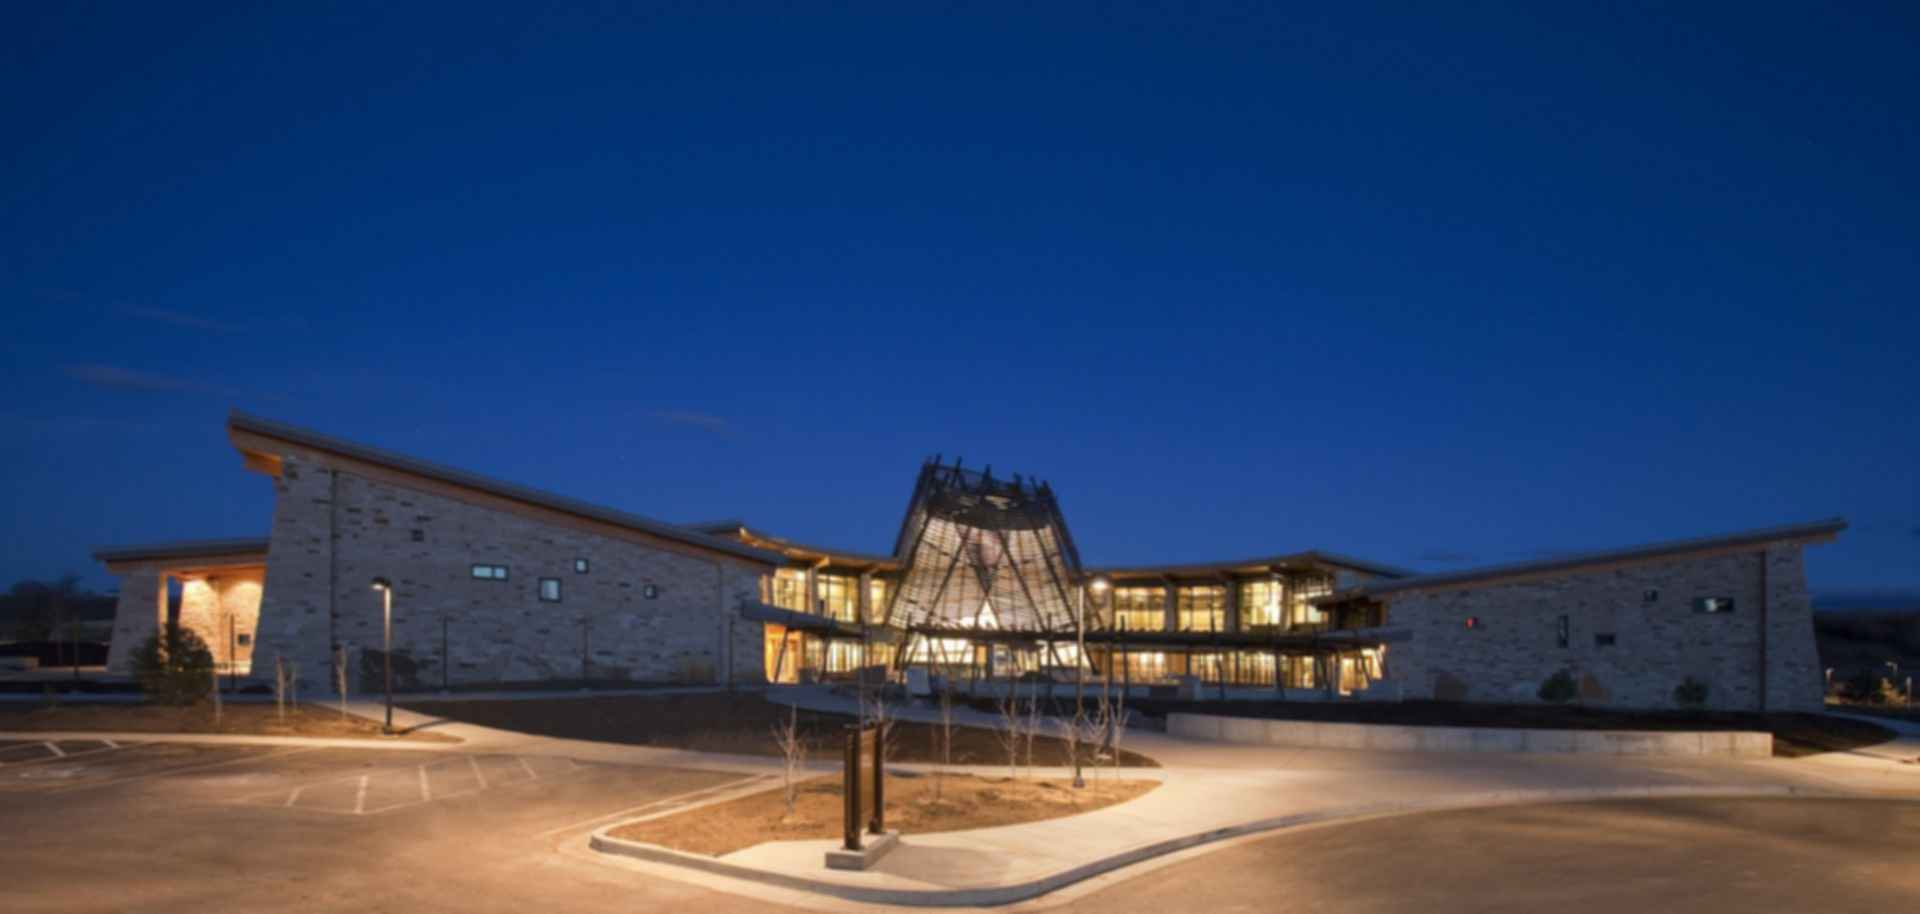 Southern Ute Cultural Center - Exterior